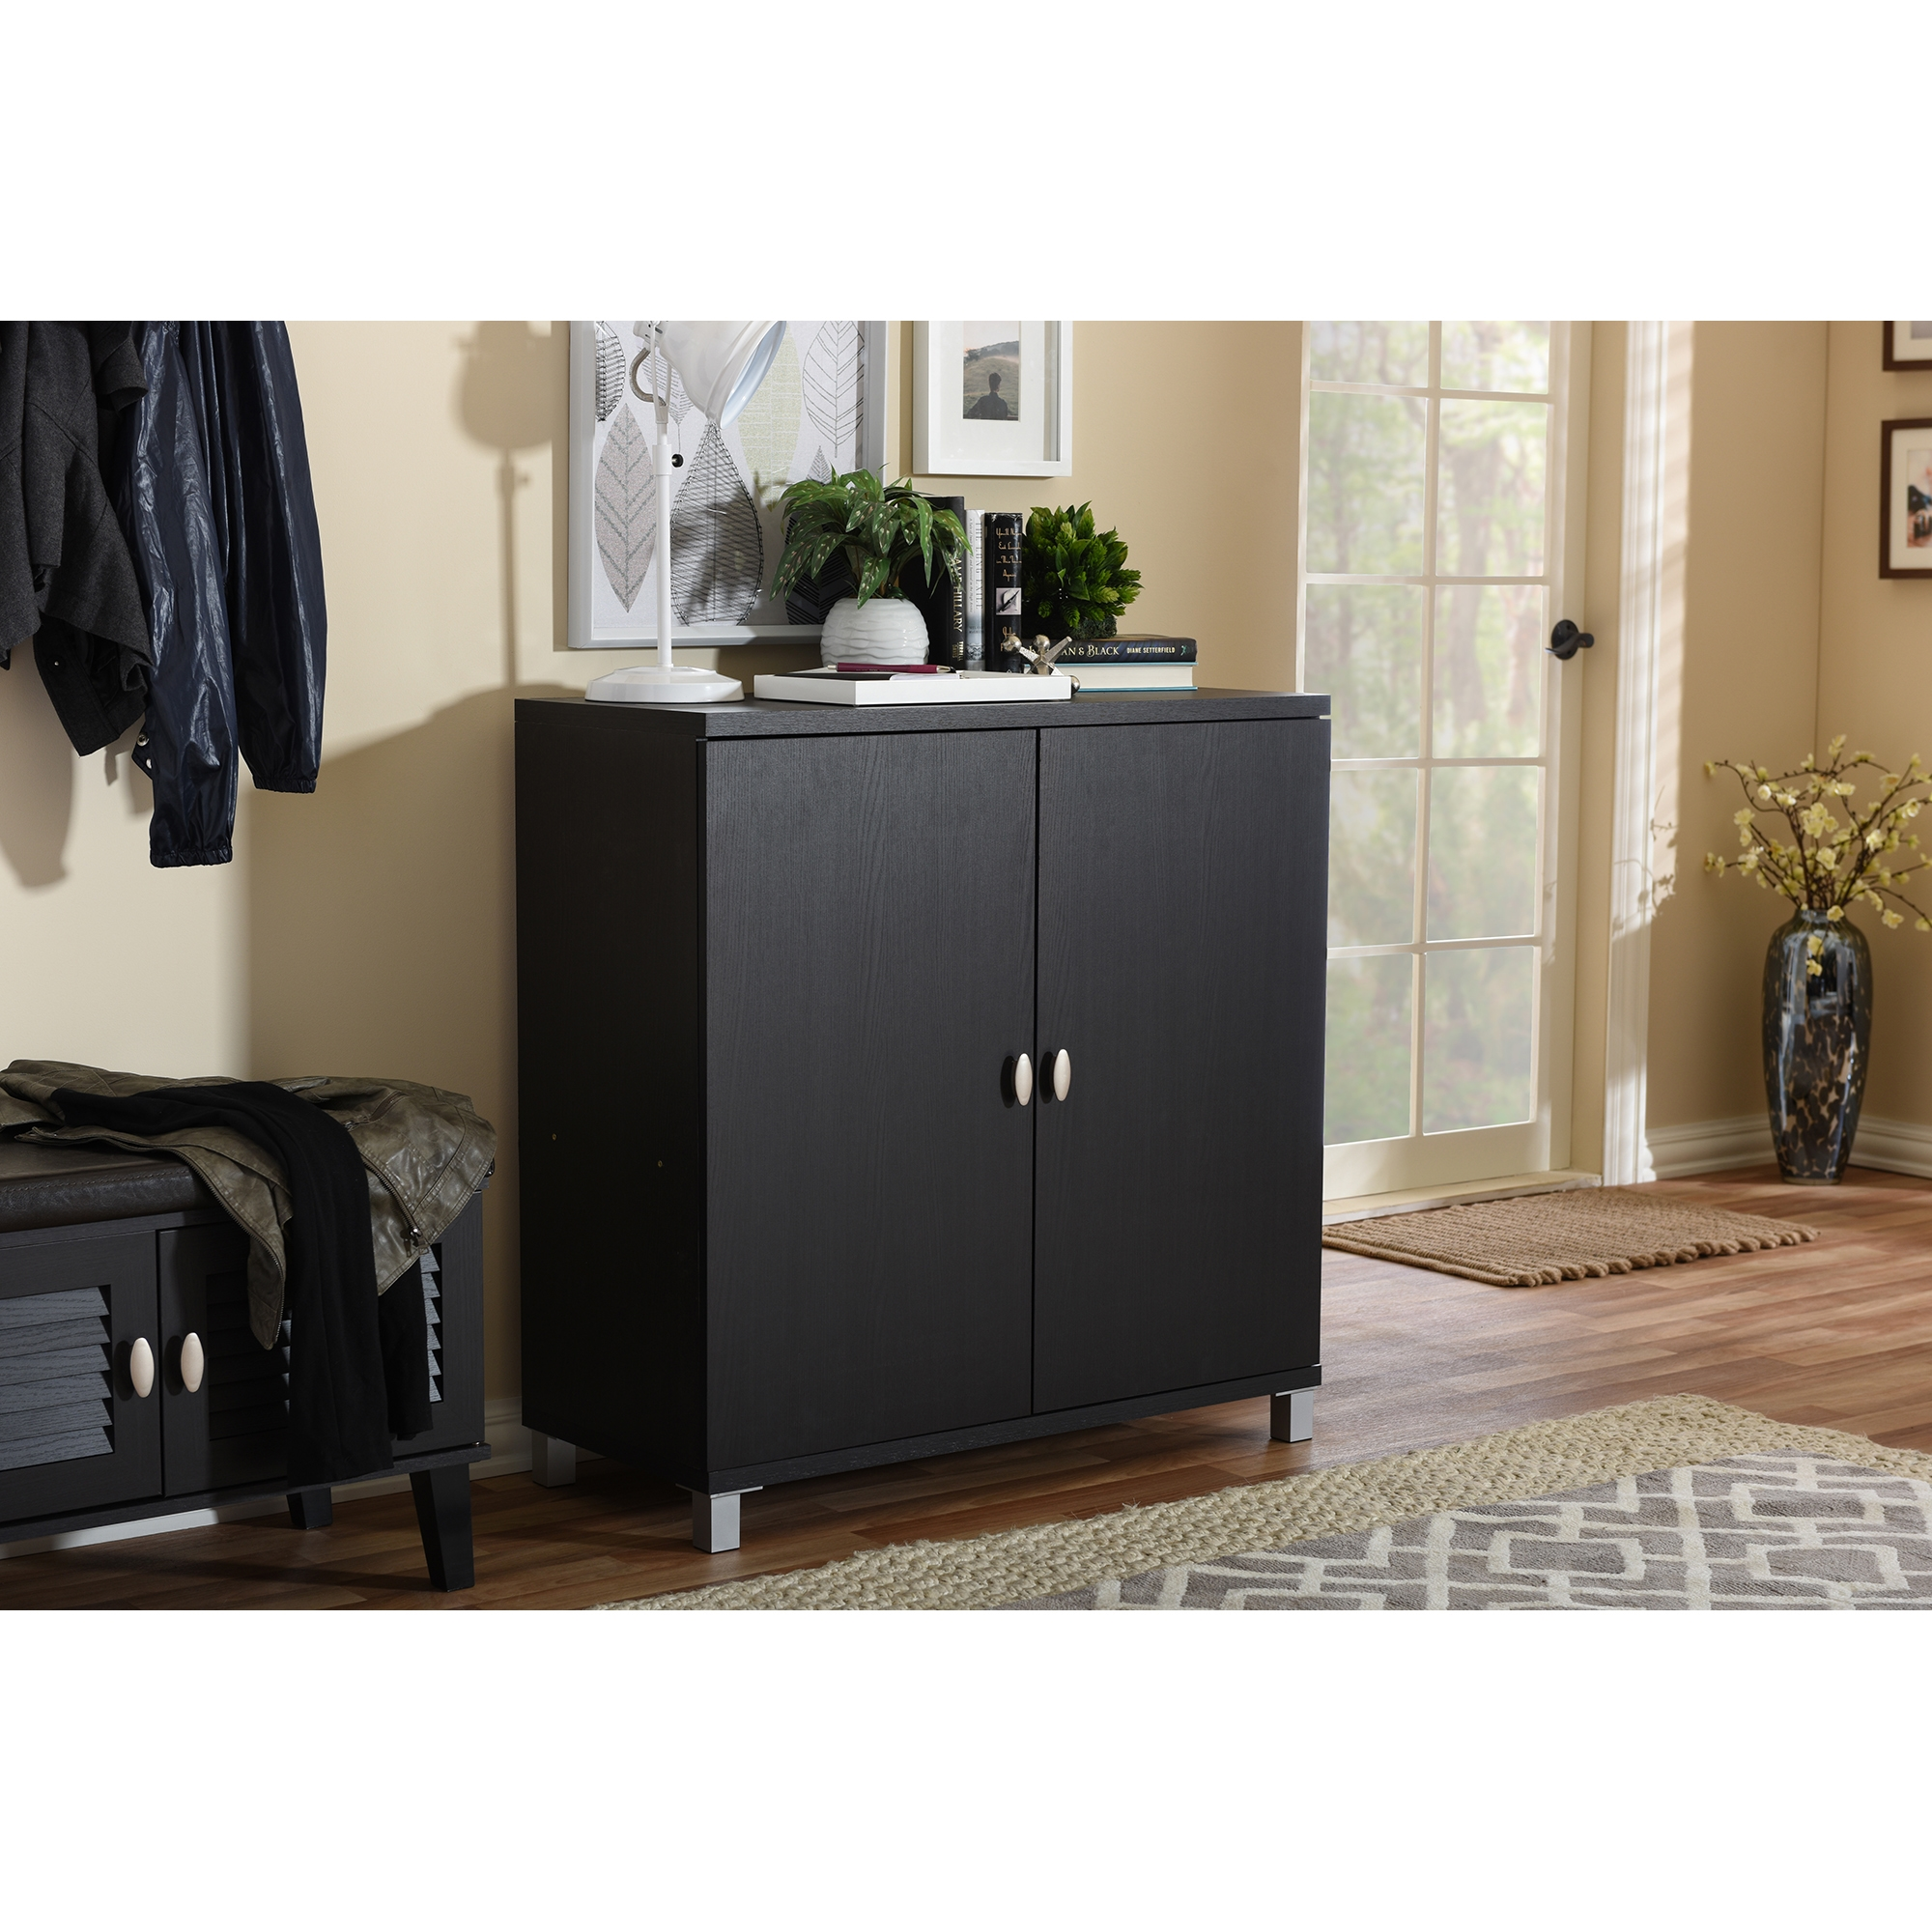 ... Baxton Studio Marcy Modern and Contemporary Dark Brown Wood Entryway Handbags or School Bags Storage Sideboard ...  sc 1 st  Wholesale Interiors & Wholesale Bathroom Storage | Wholesale Bathroom Furniture ...